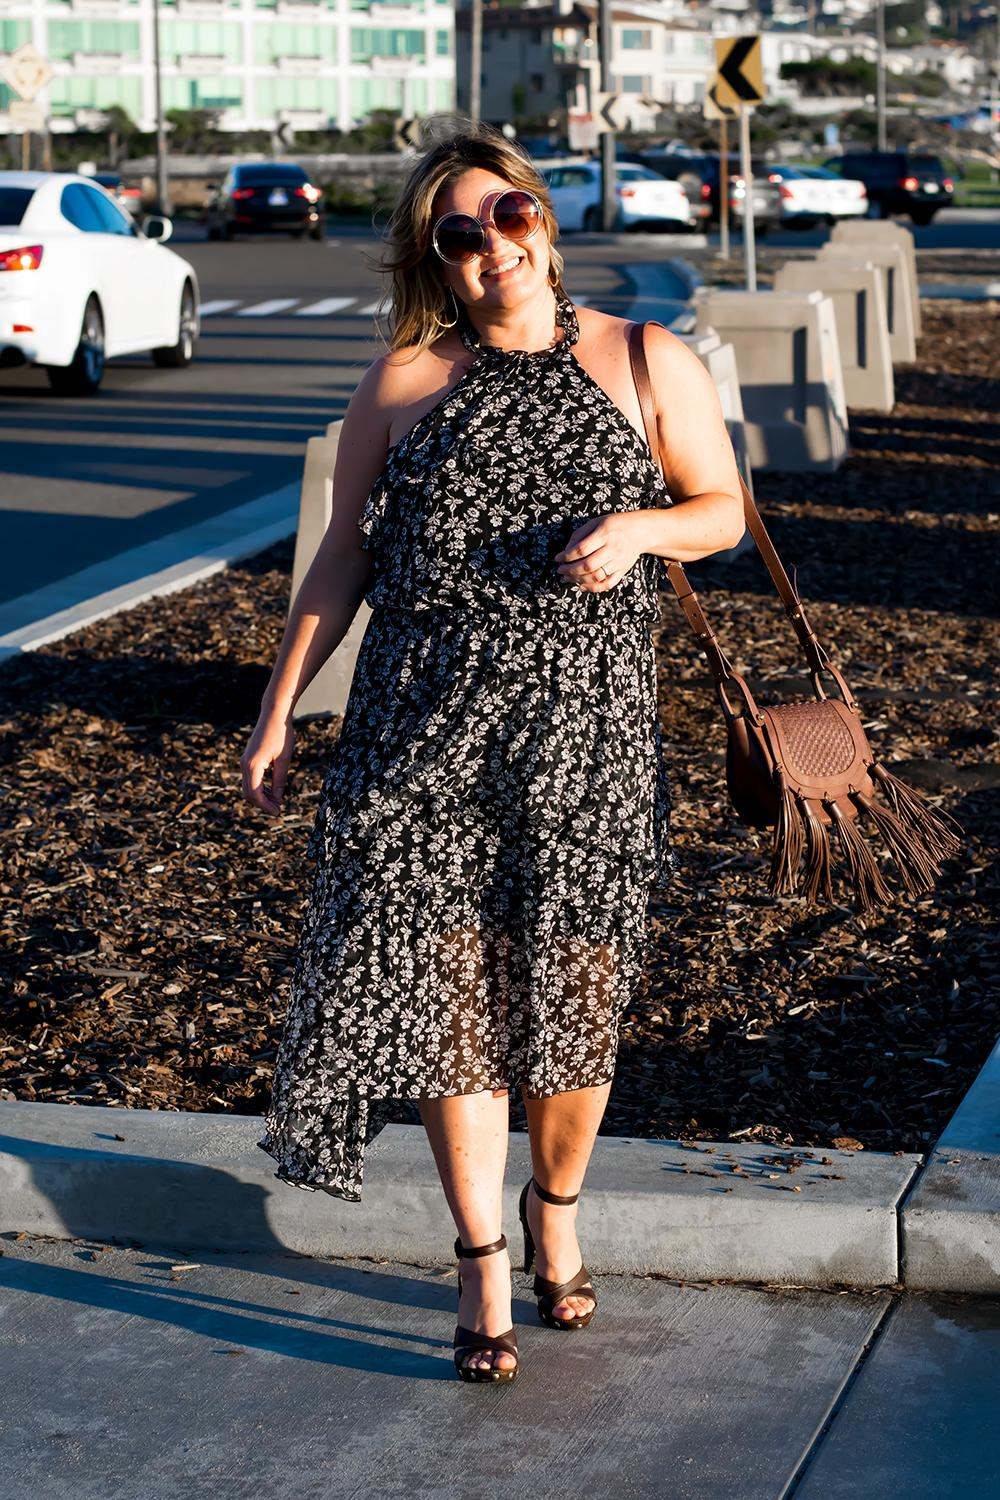 Tiered-Floral-Ruffle-Dress-The-Biggest-Summer-Trends-for-2017-Barefoot-in-LA-Fashion-Blog-Style-Ideas-Outfits-1263